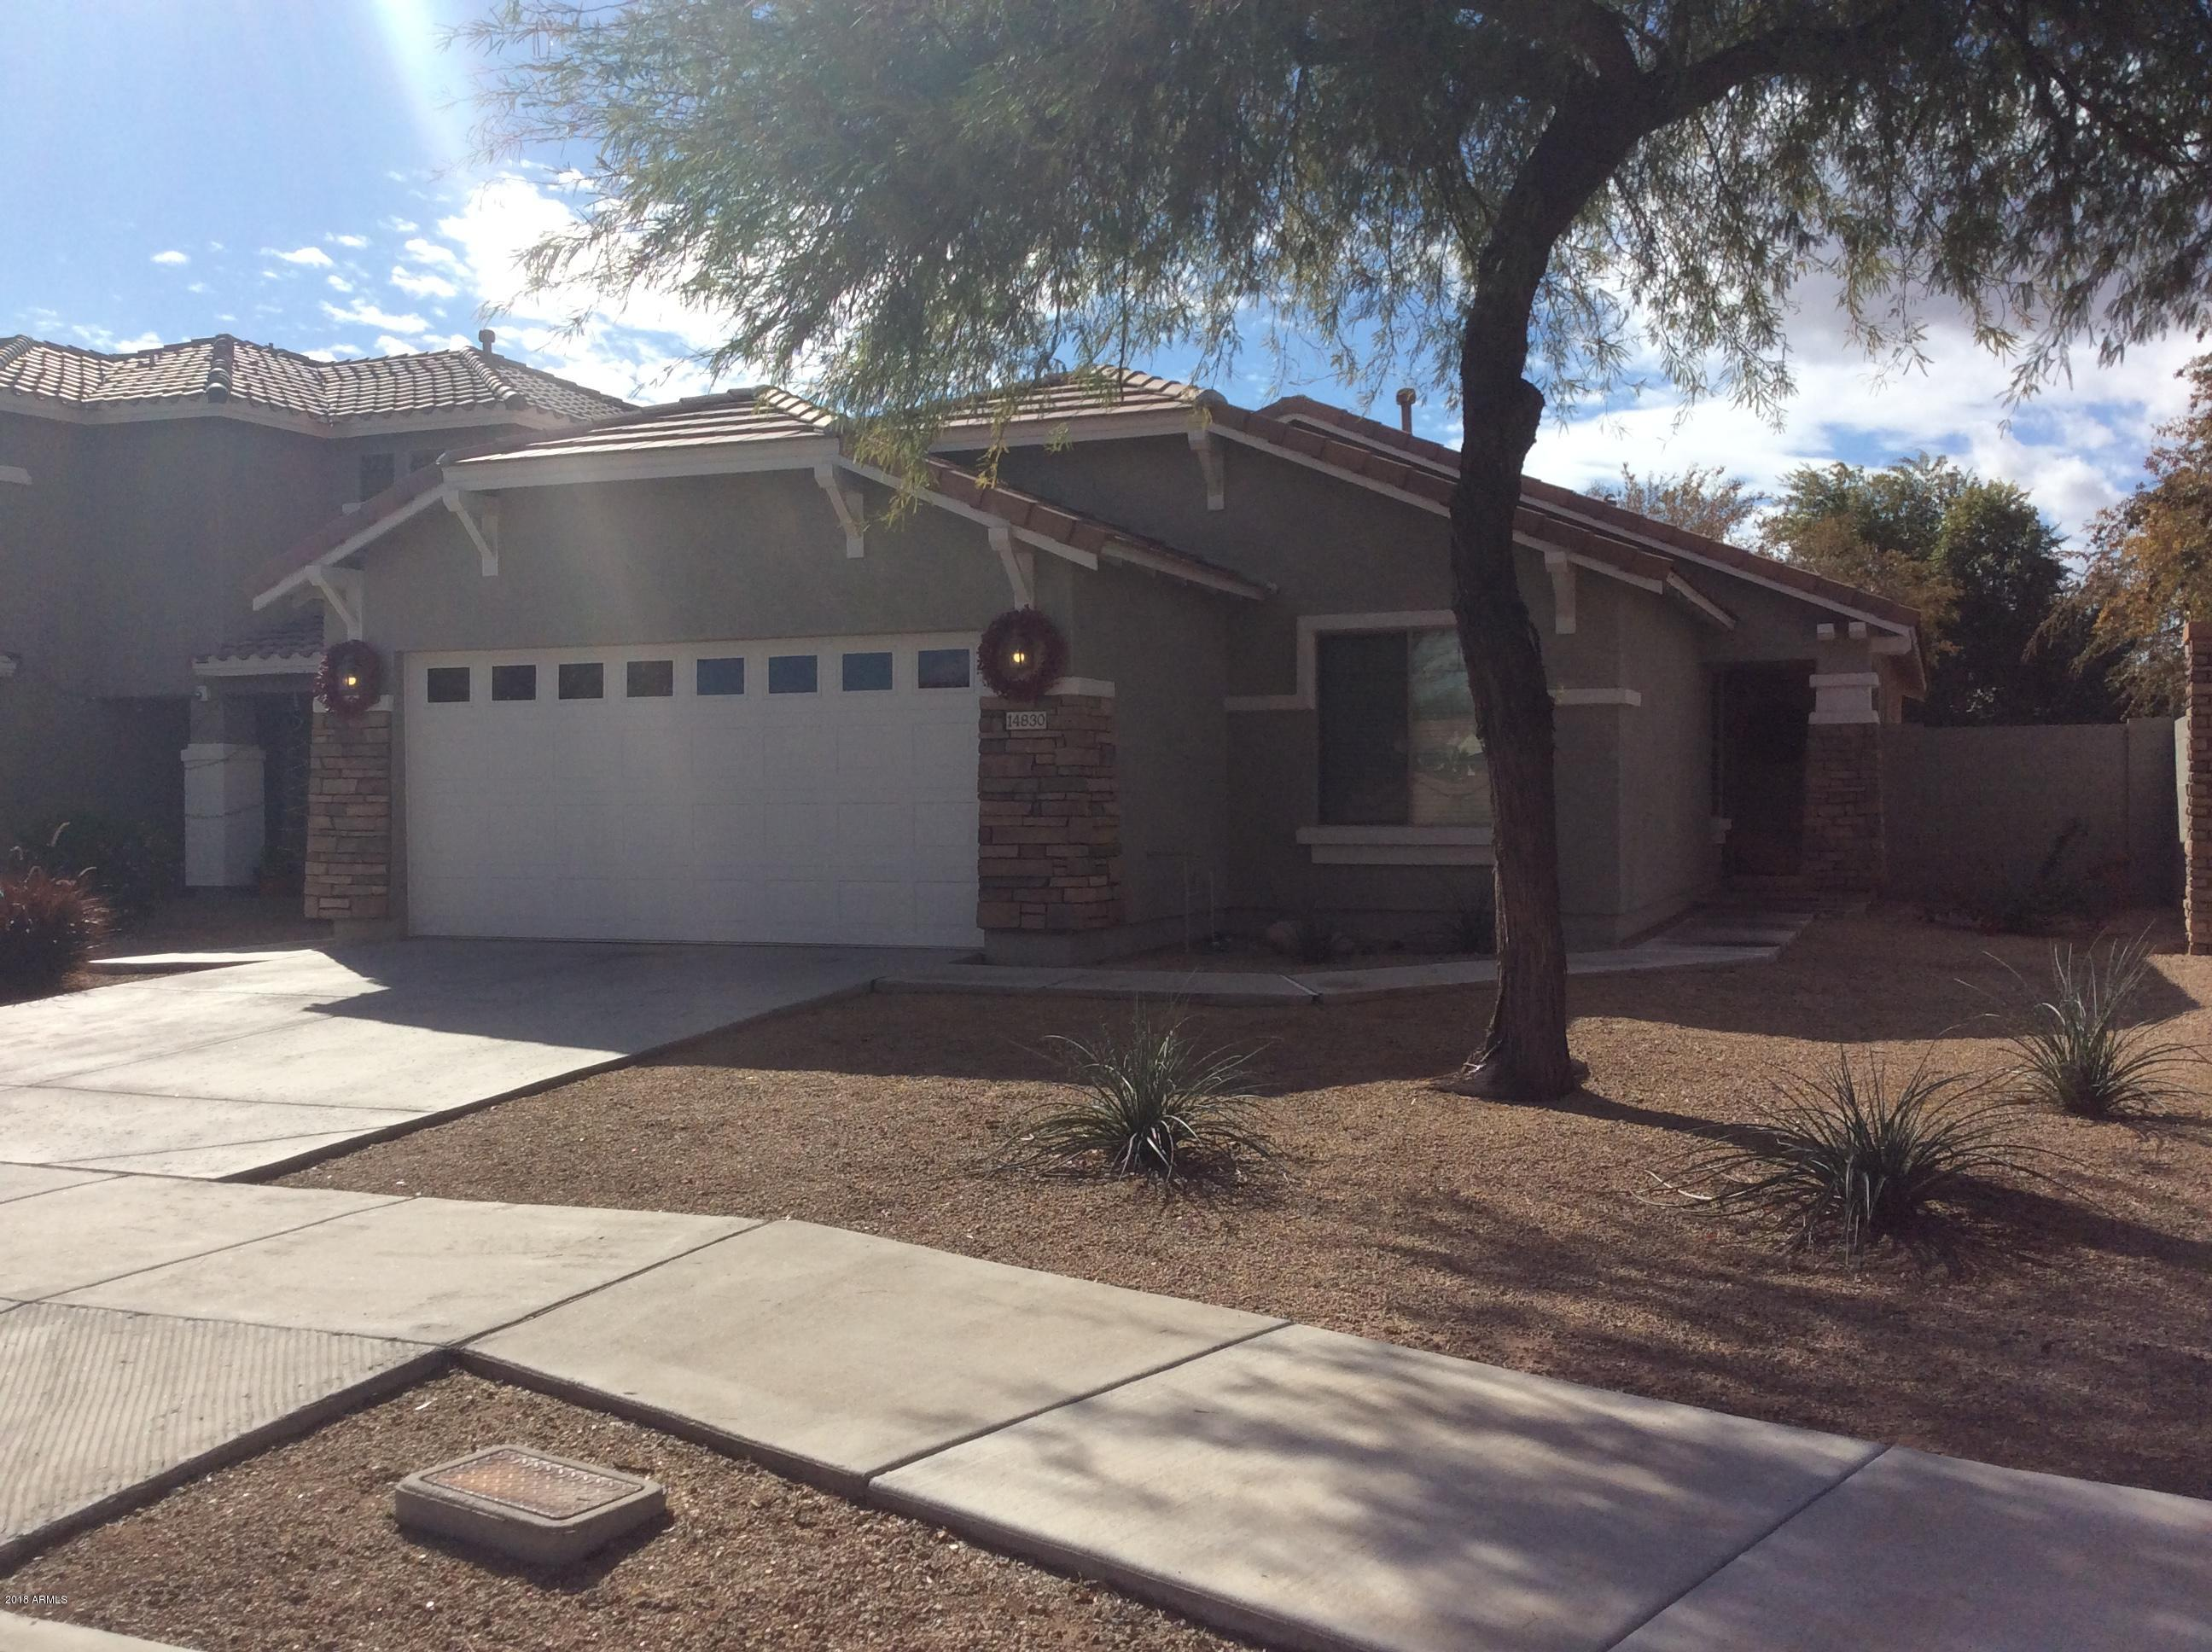 14830 N 140TH Avenue Surprise, AZ 85379 - MLS #: 5853329